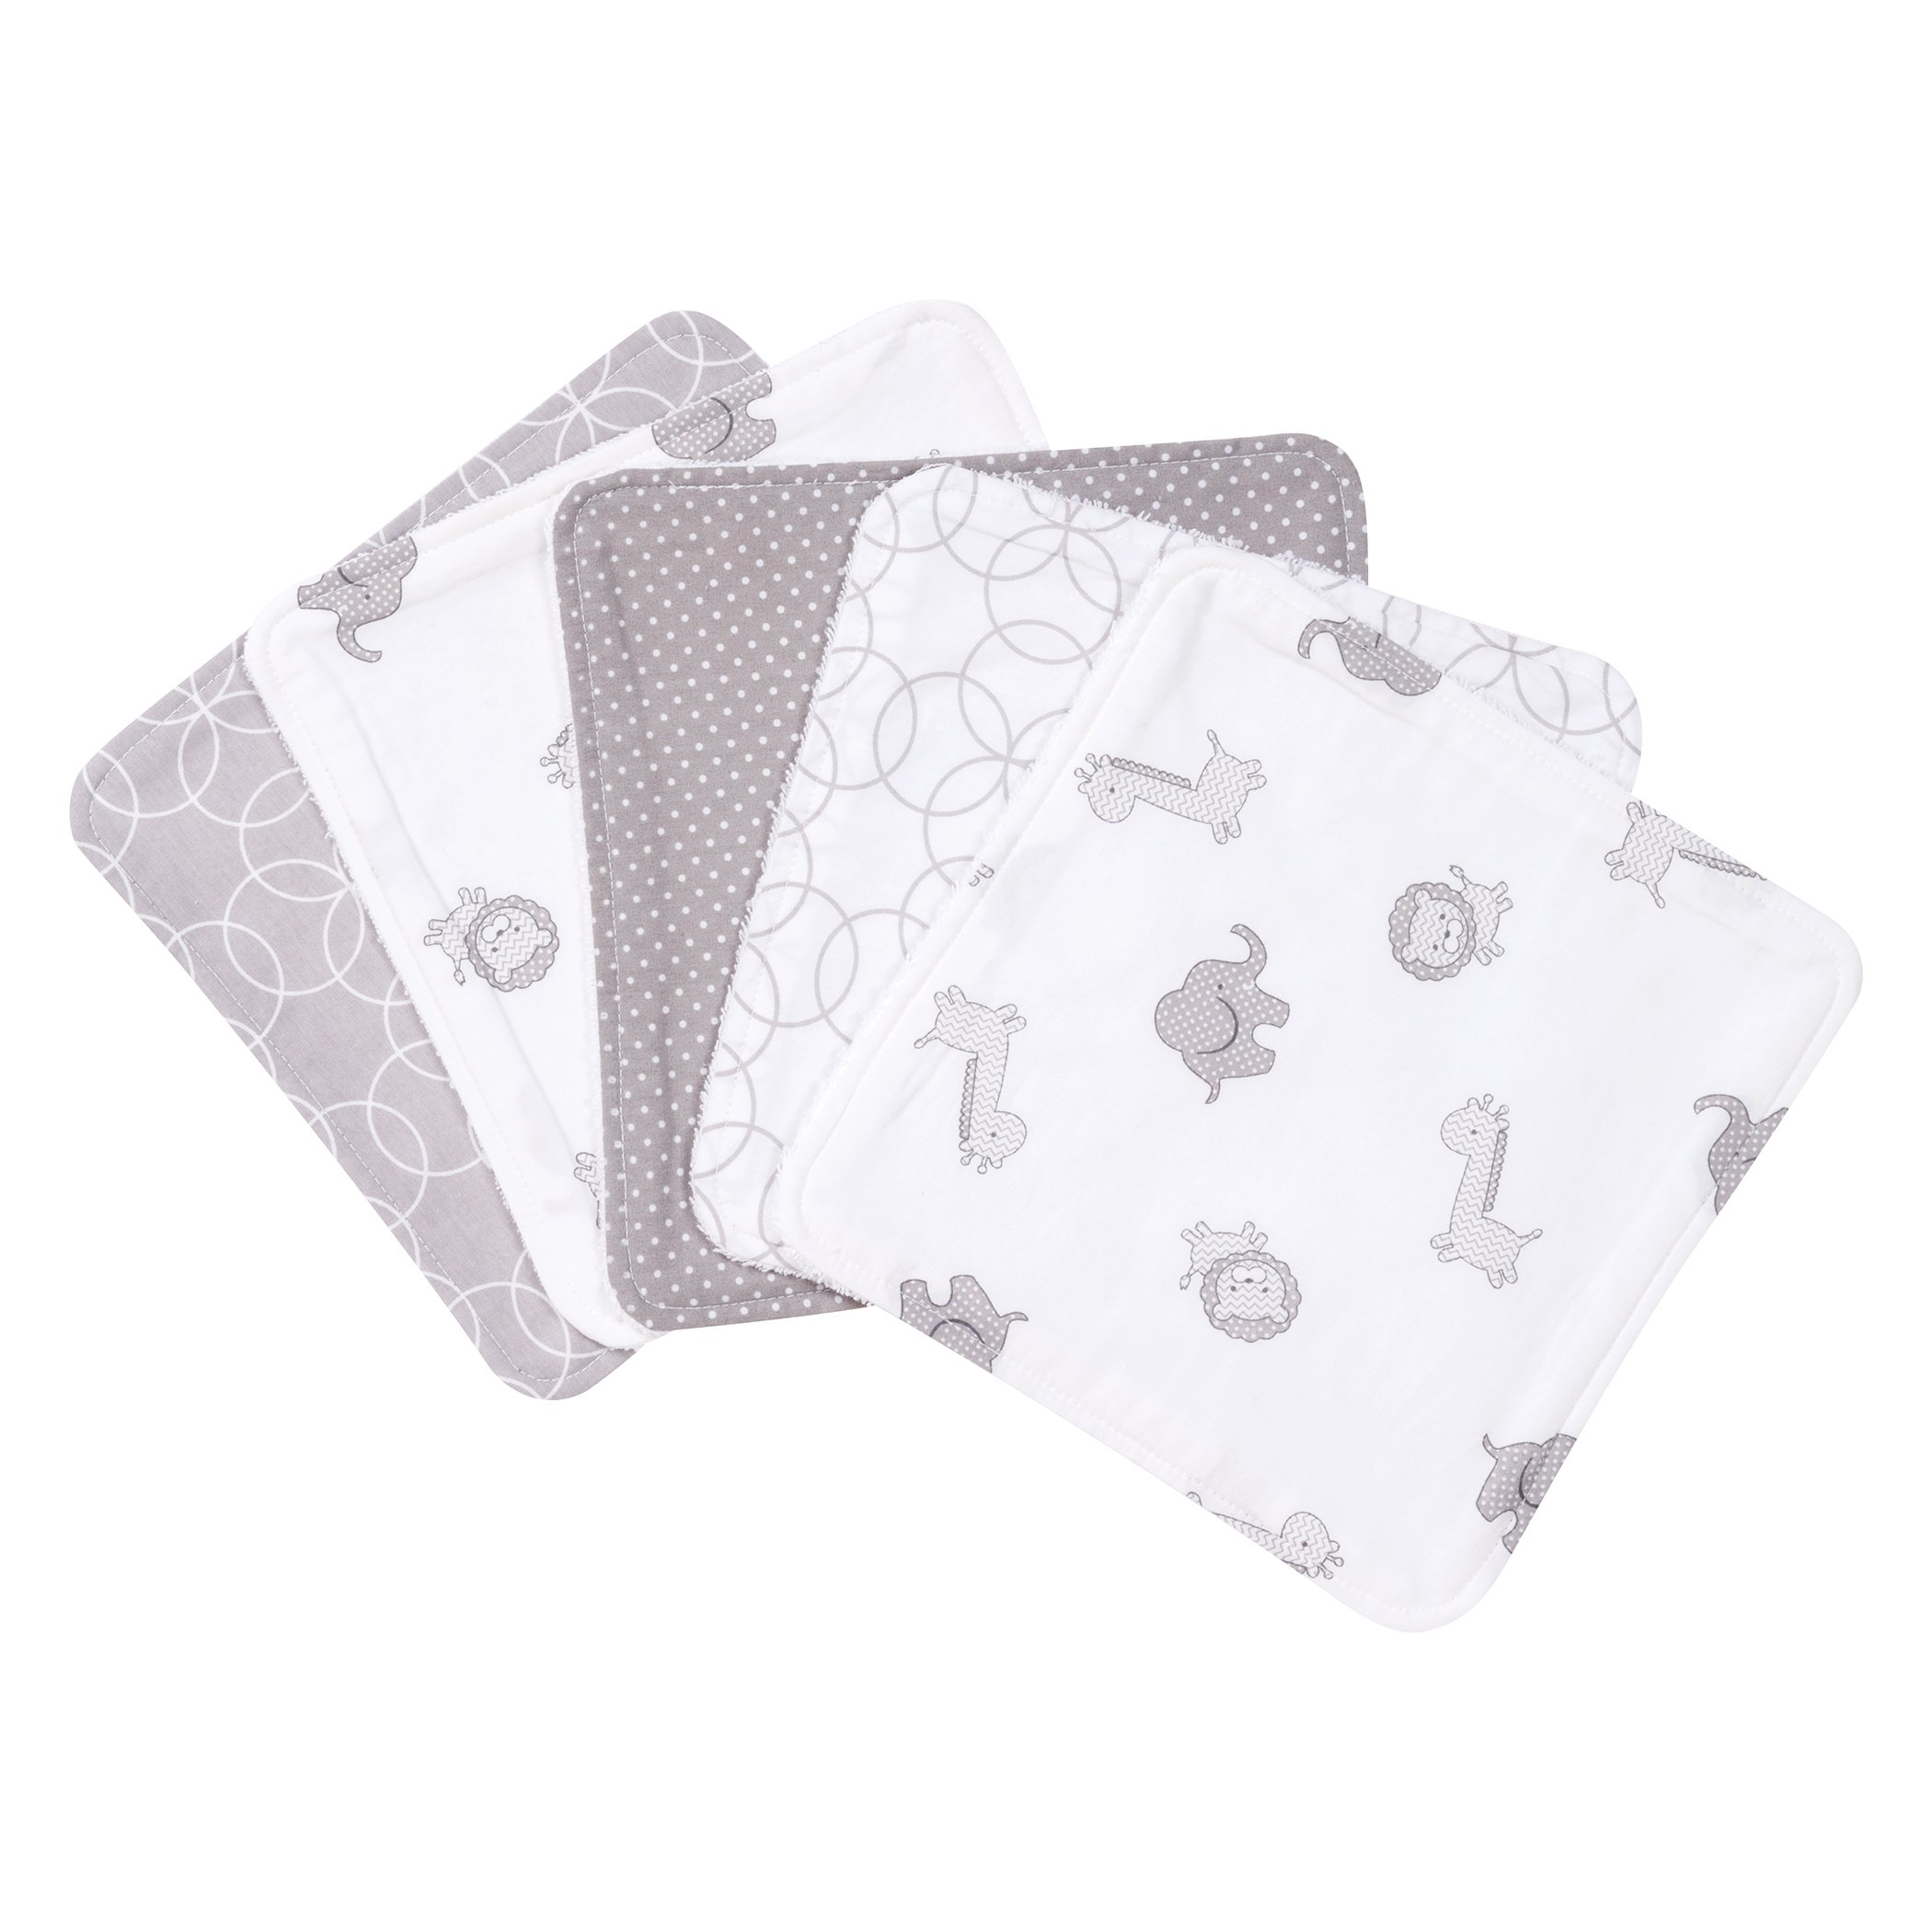 Trend Lab Circles 5 Pack Wash Cloth Set, Gray/White